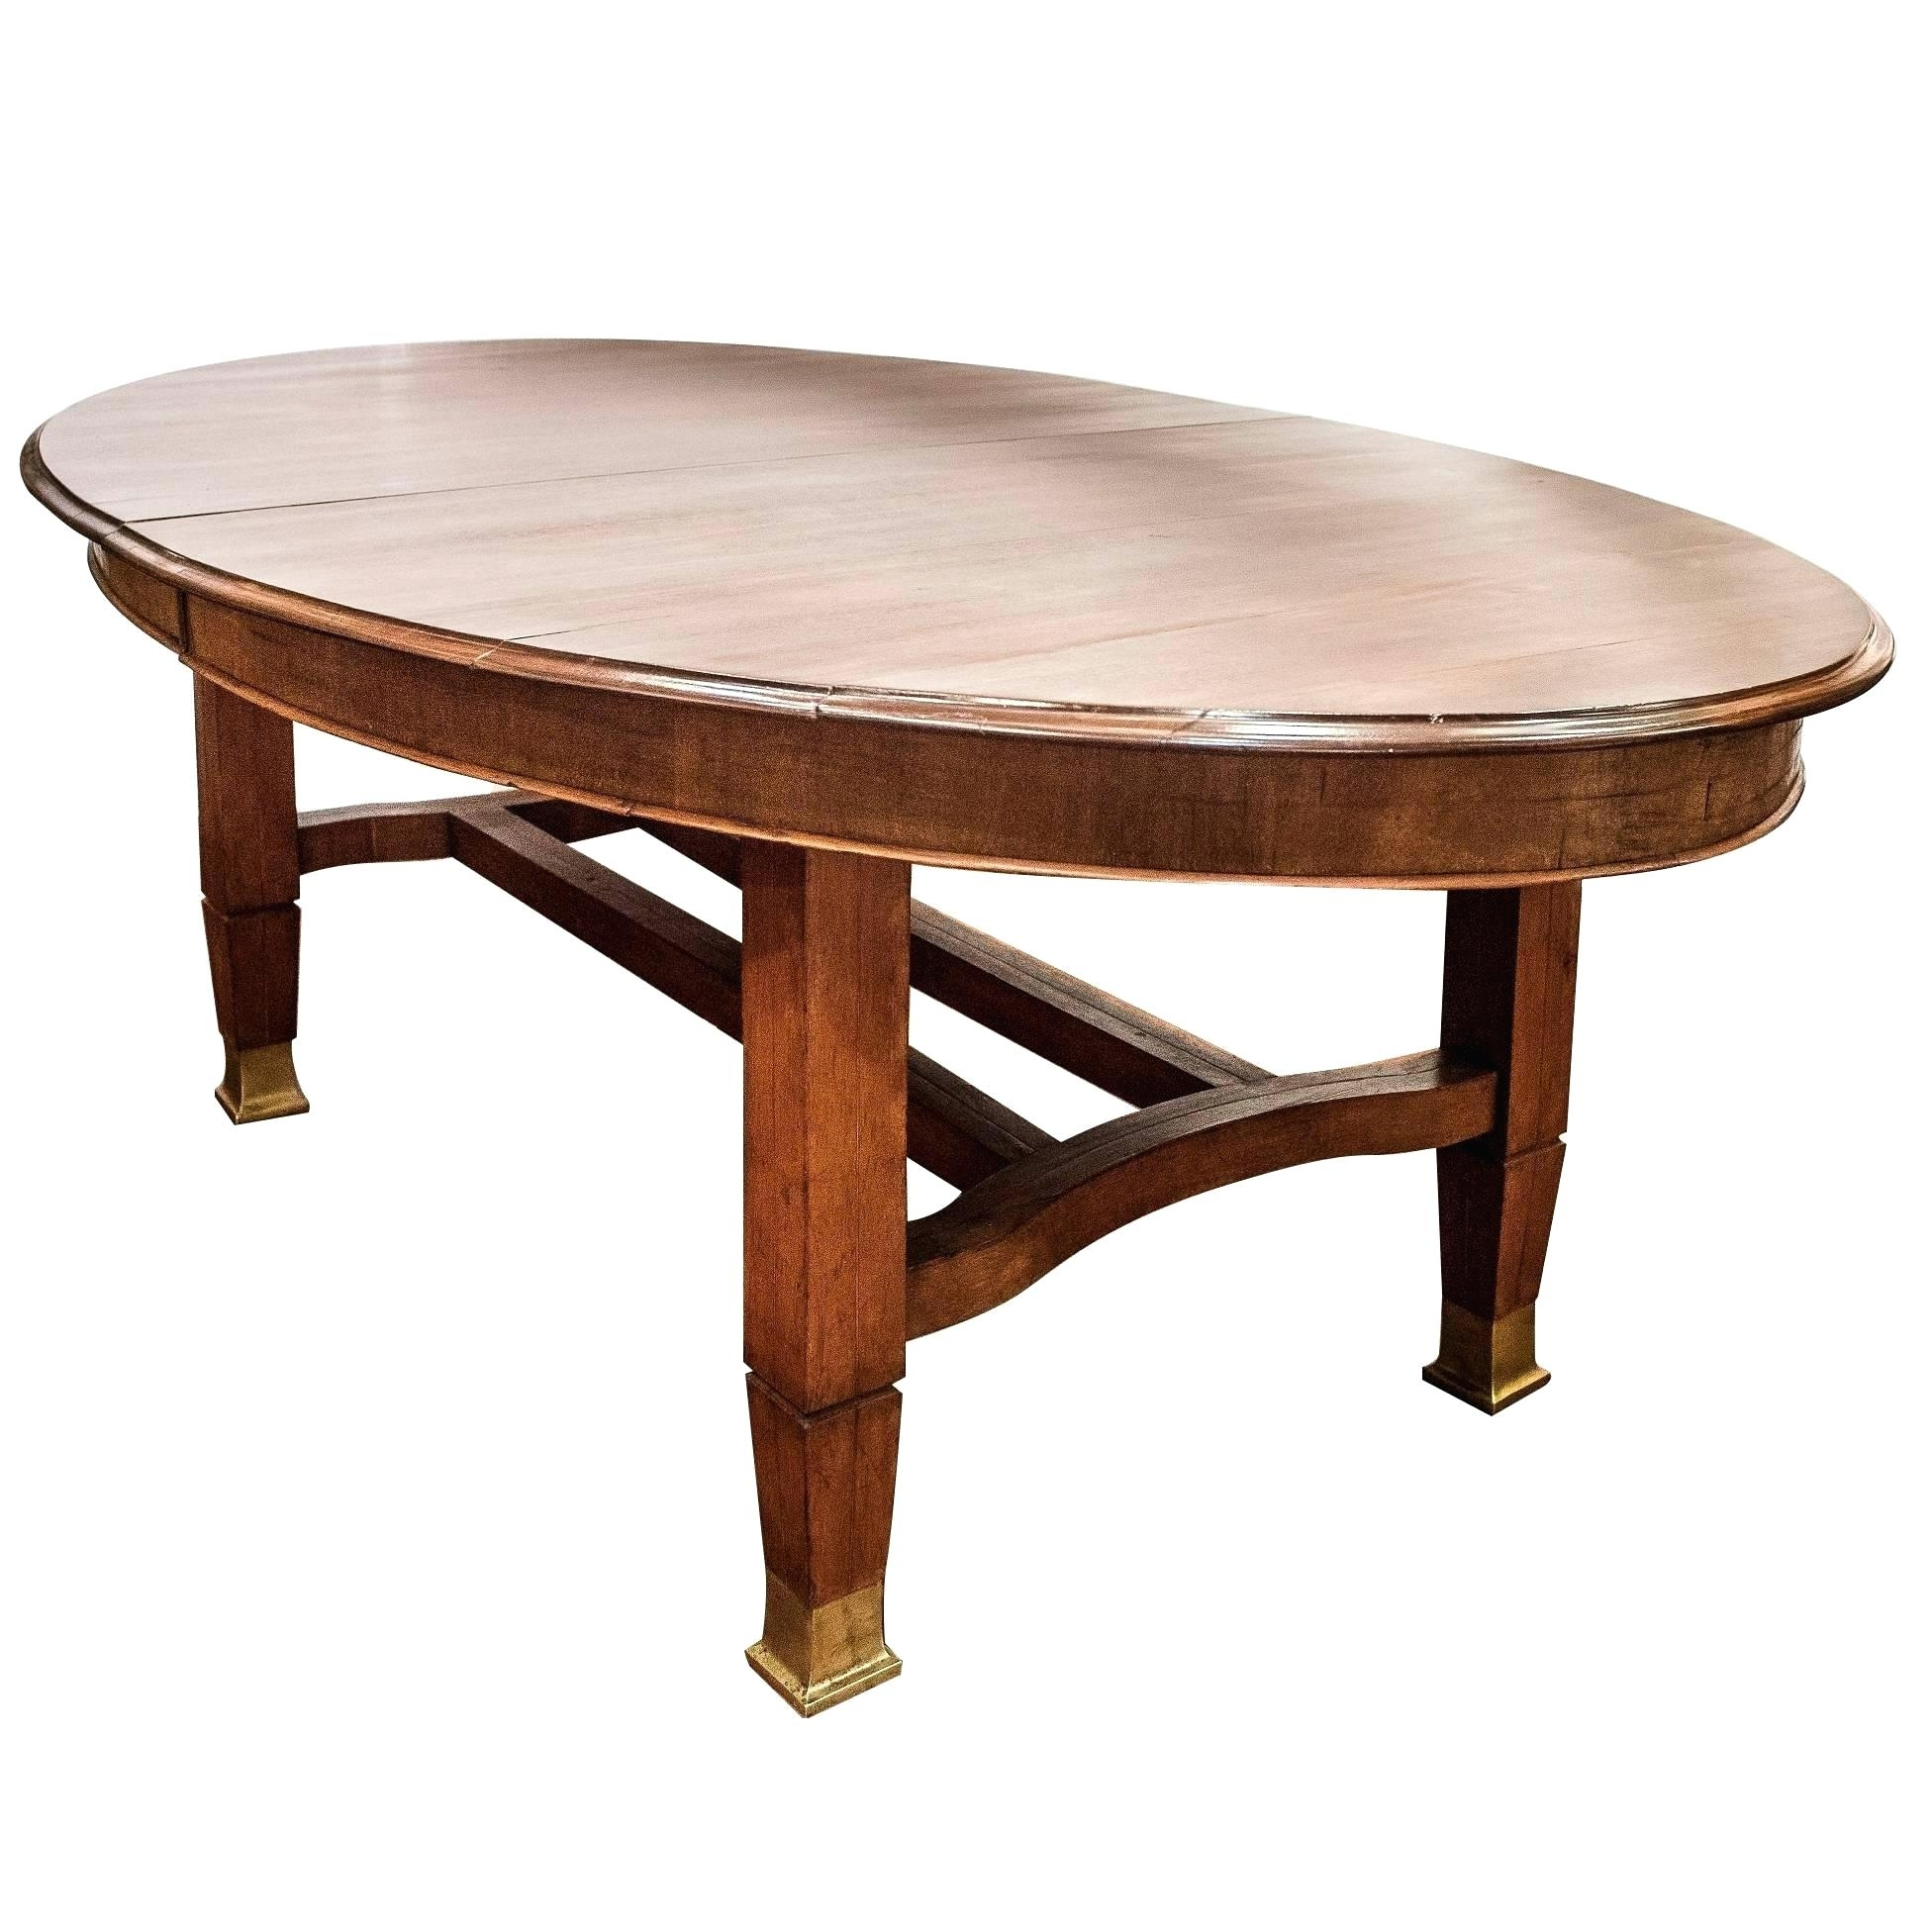 Magnolia Home English Country Oval Dining Tables Pertaining To Most Recent English Dining Table Magnolia Homeroom Country Oval Oak And (View 15 of 25)